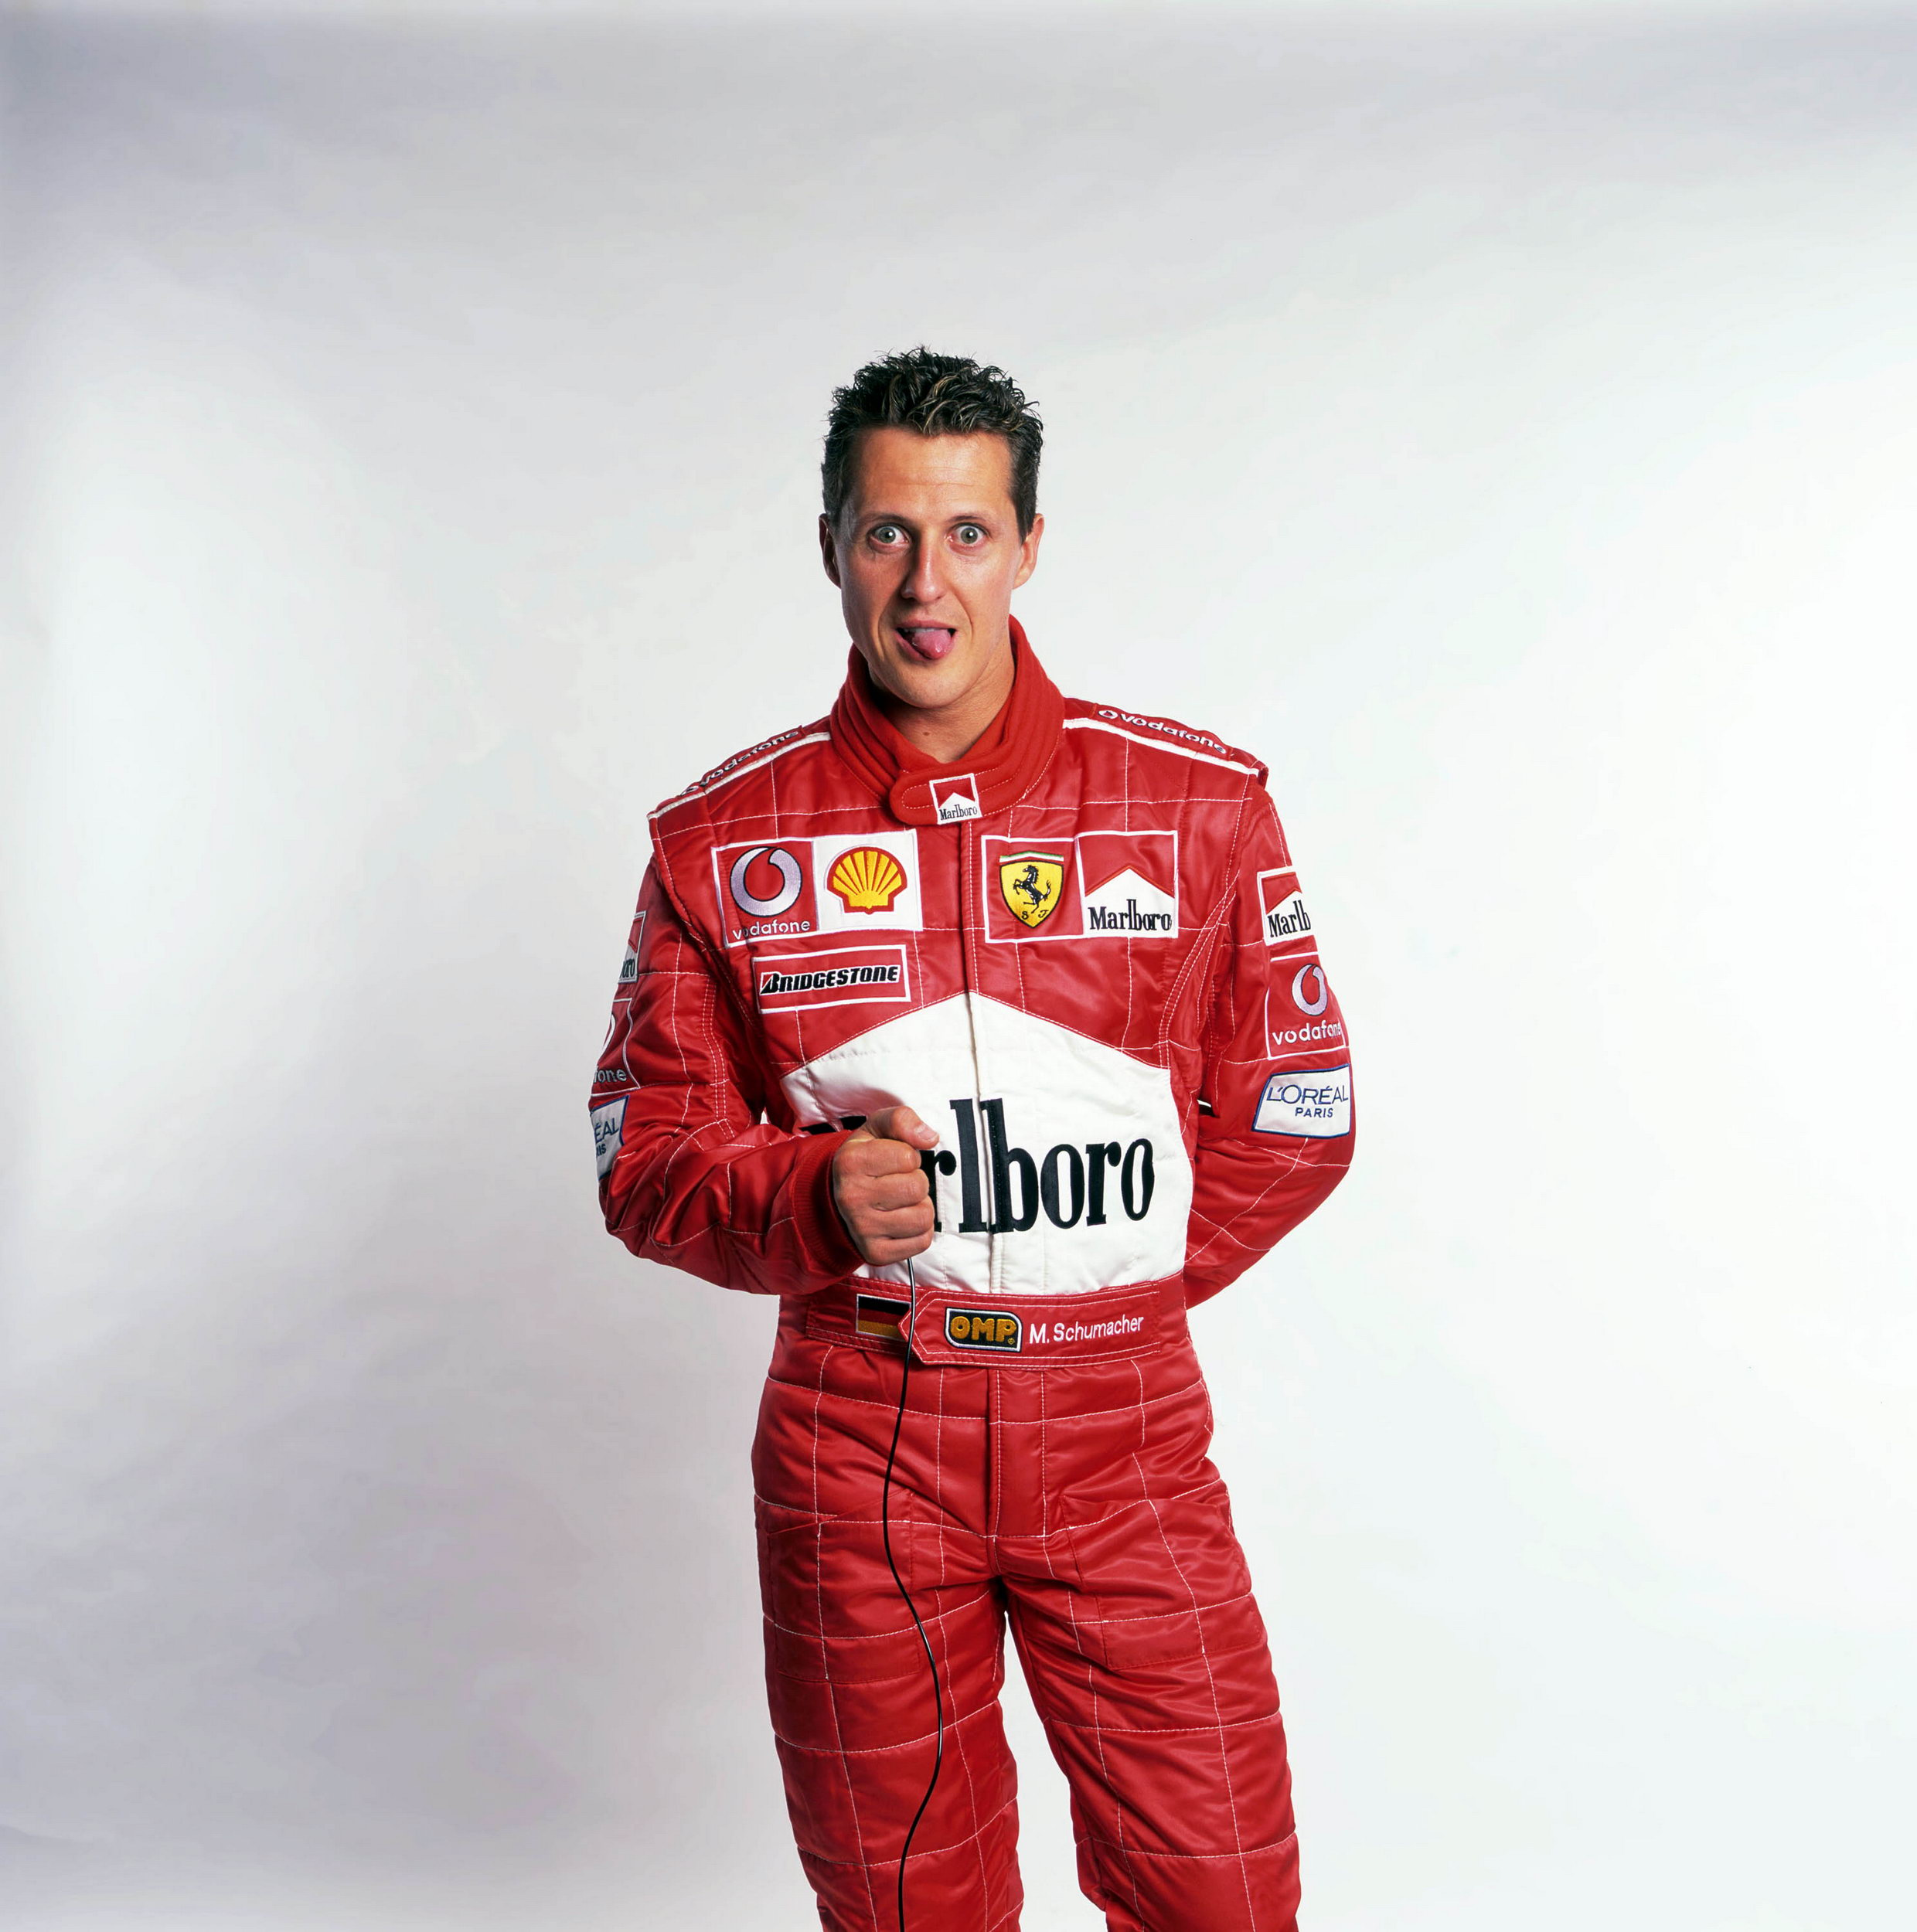 michael schumacher - photo #46